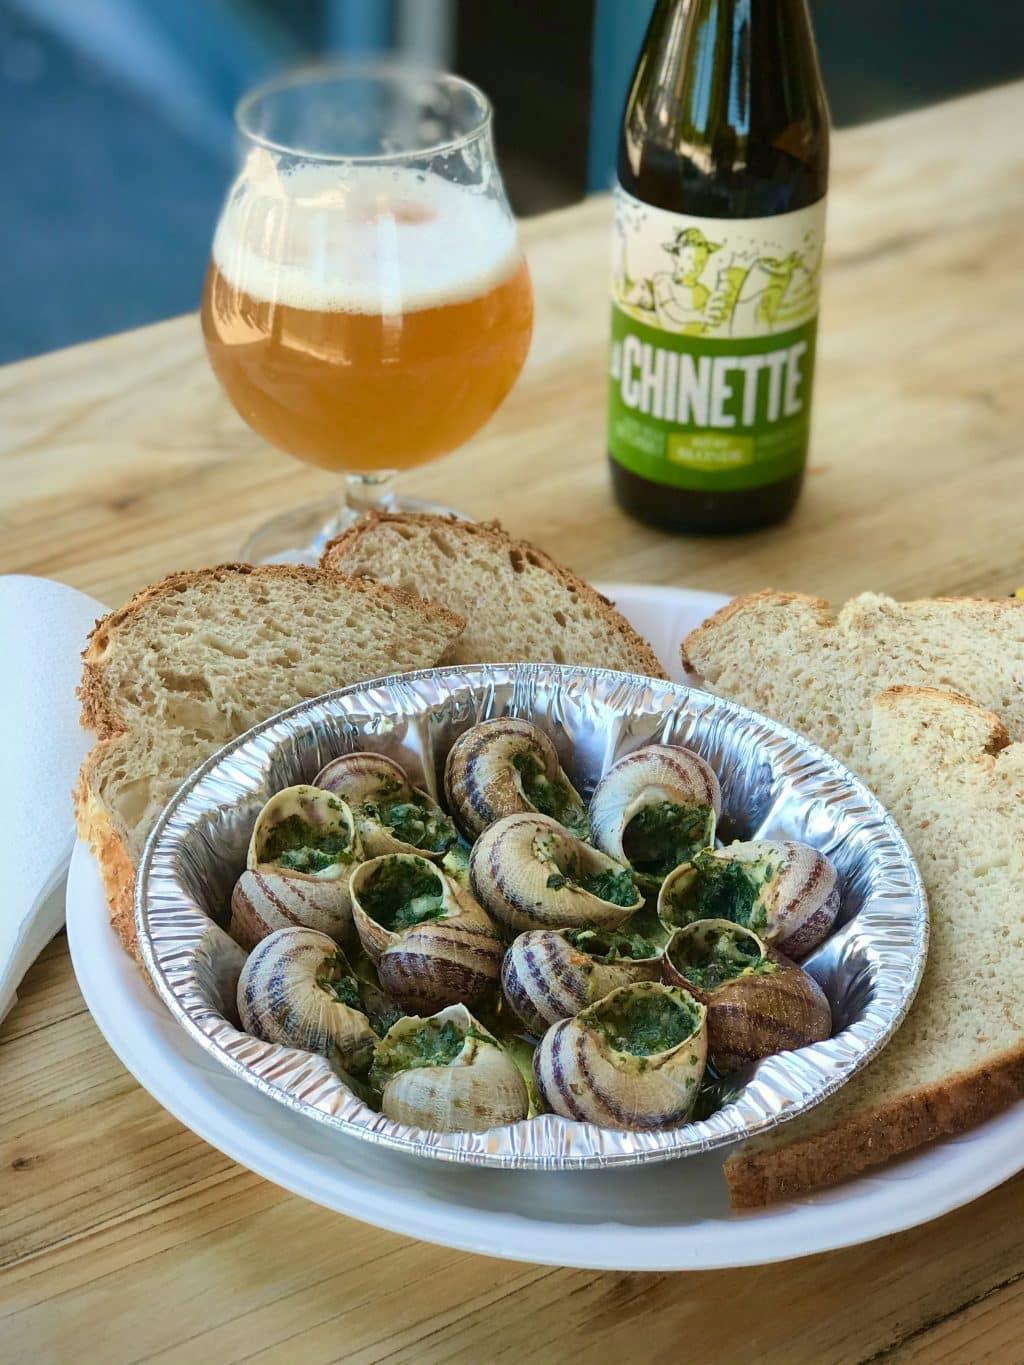 Escargots in garlic herb butter are such a treat. But do you know how to prep fatty land snails for cooking? Let us show you how!